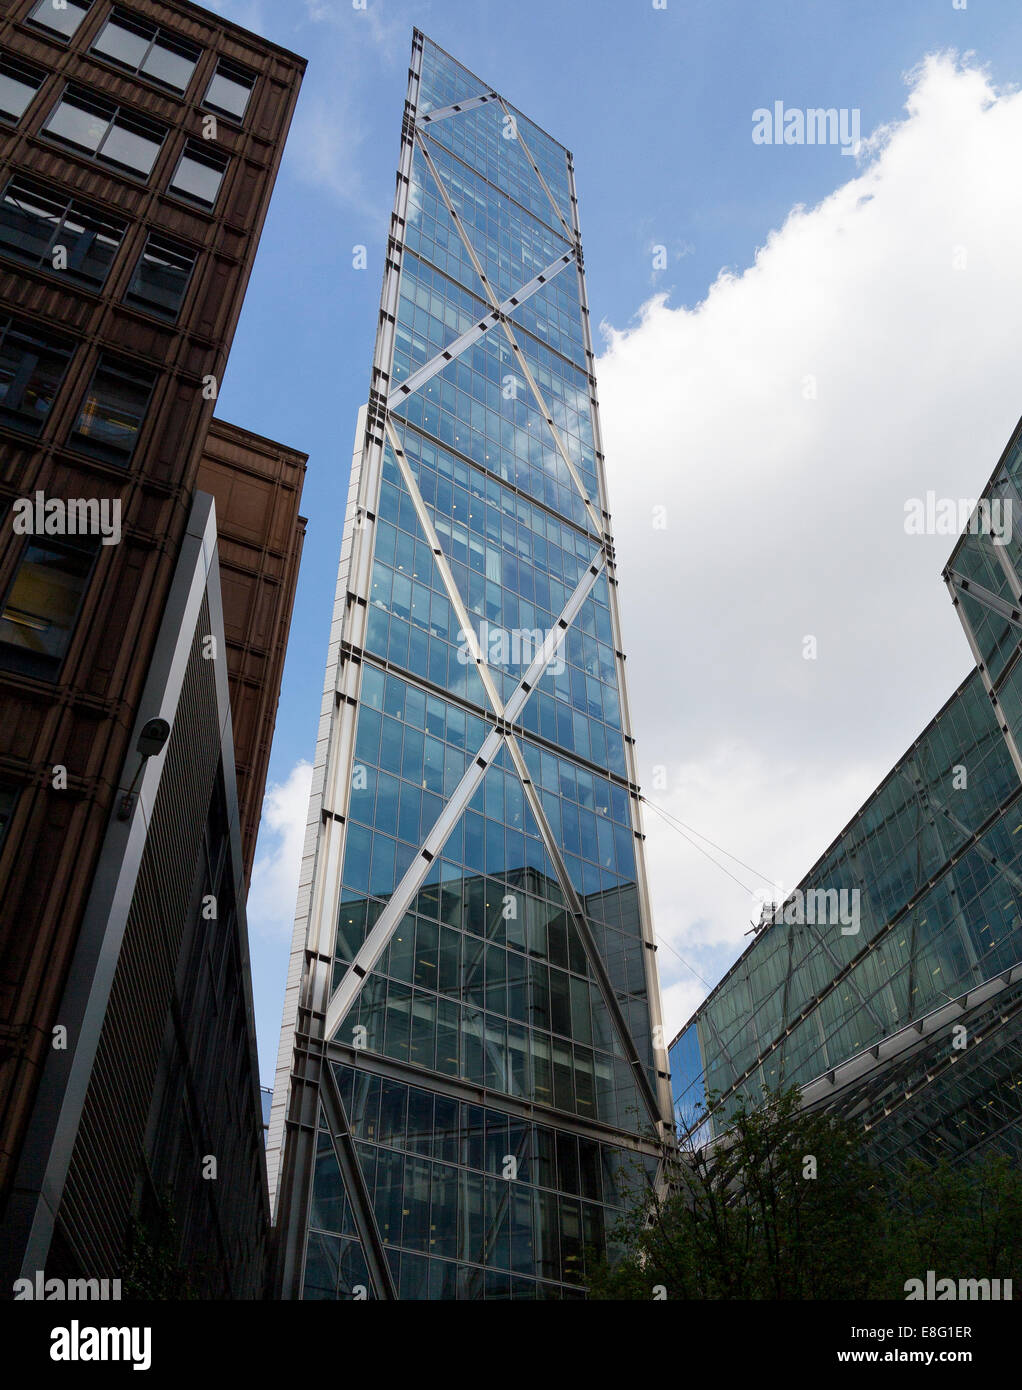 The Broadgate Tower, just north of Liverpool Street Station, City of London - Stock Image